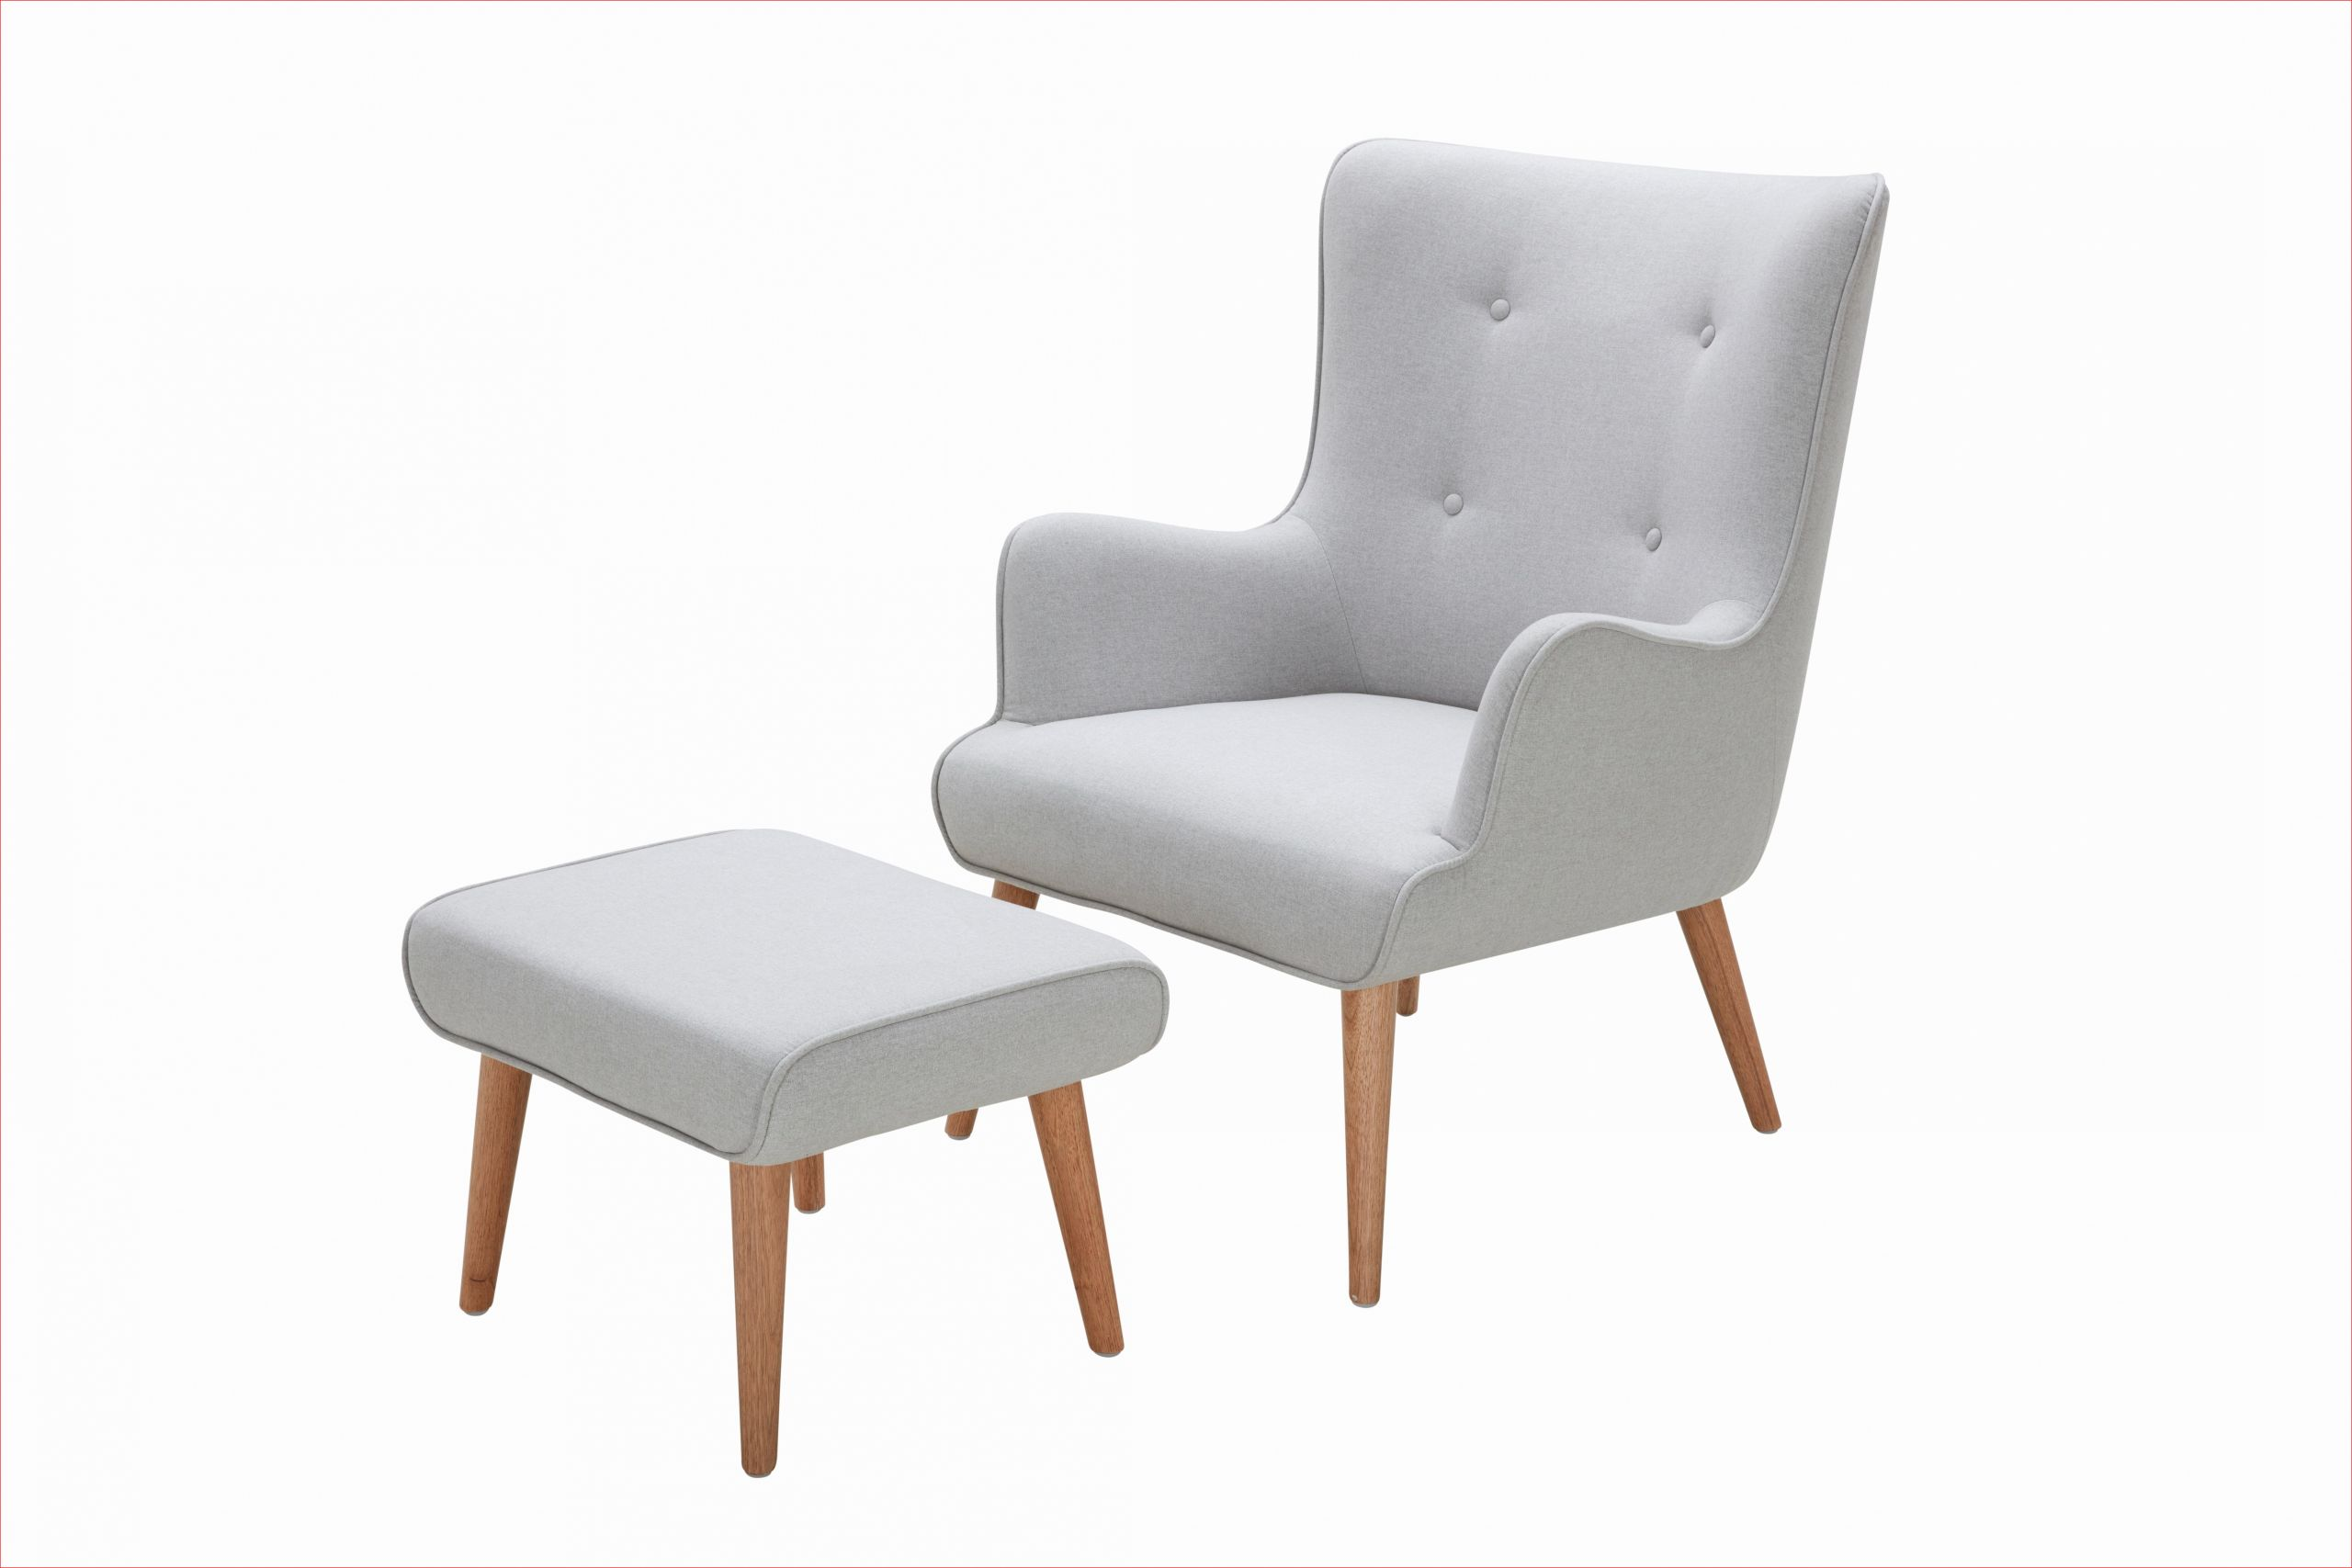 Fauteuil Pour Salon Best Of Que Faire Siege Crapaud Collection De Si¨ge Décor 2019